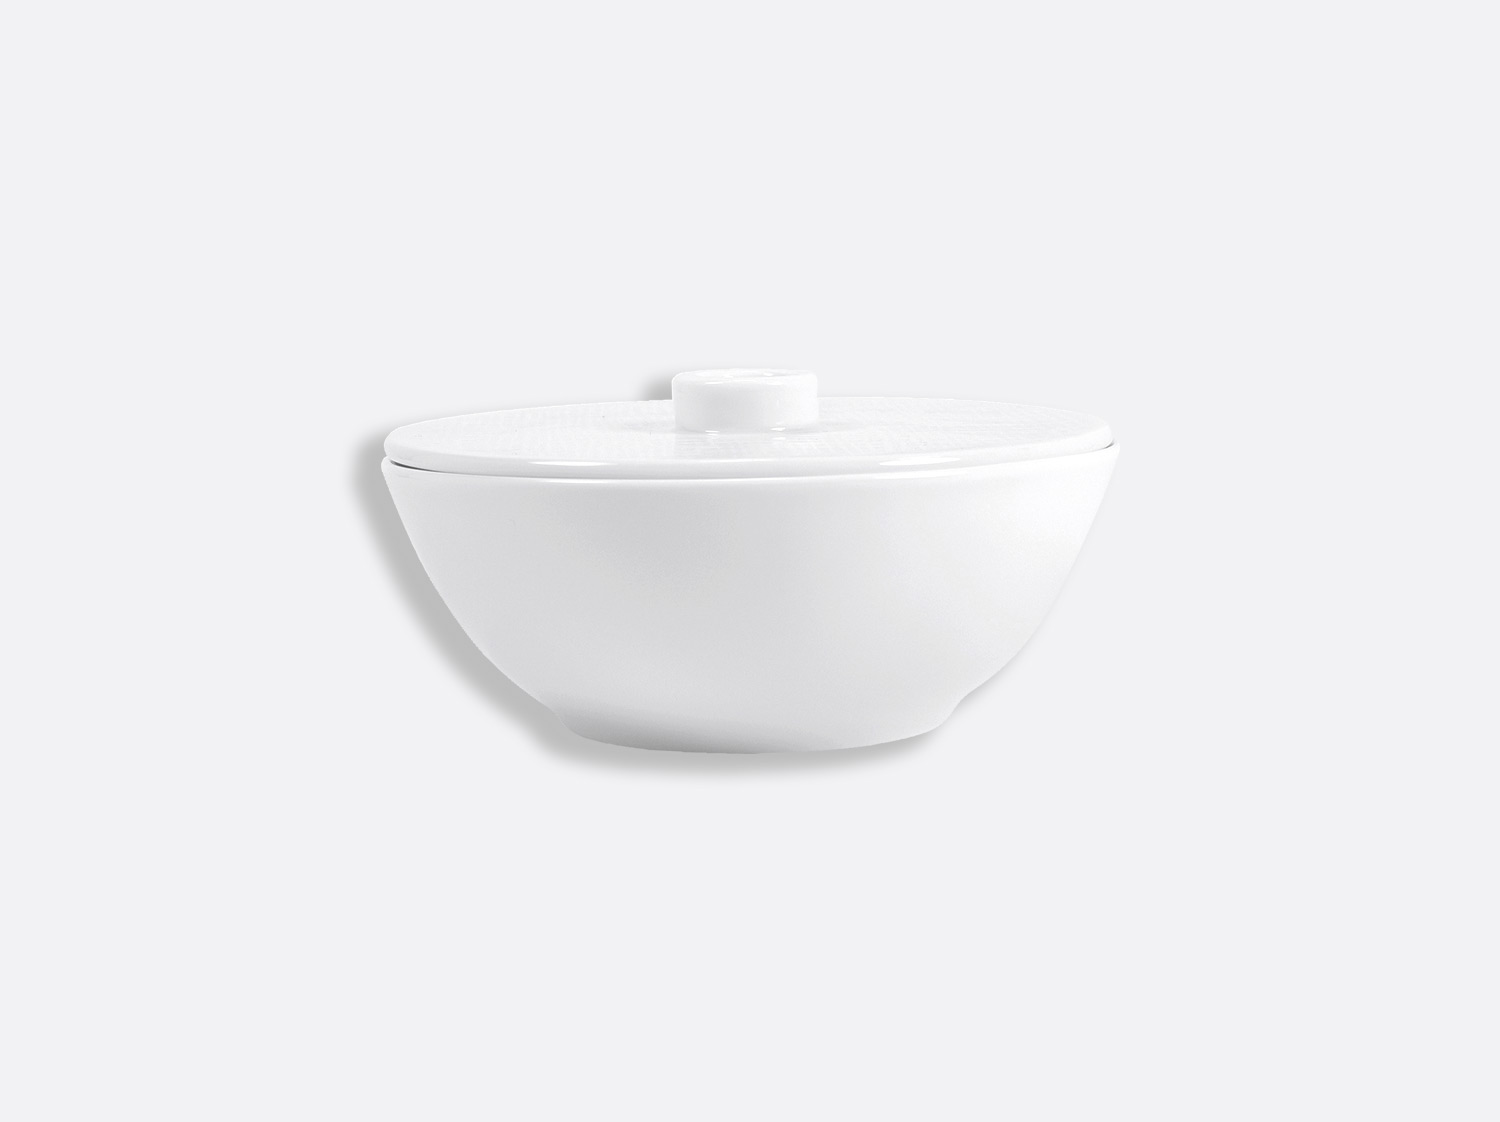 Bol couvert 40 cl en porcelaine de la collection ORGANZA BLANC Bernardaud